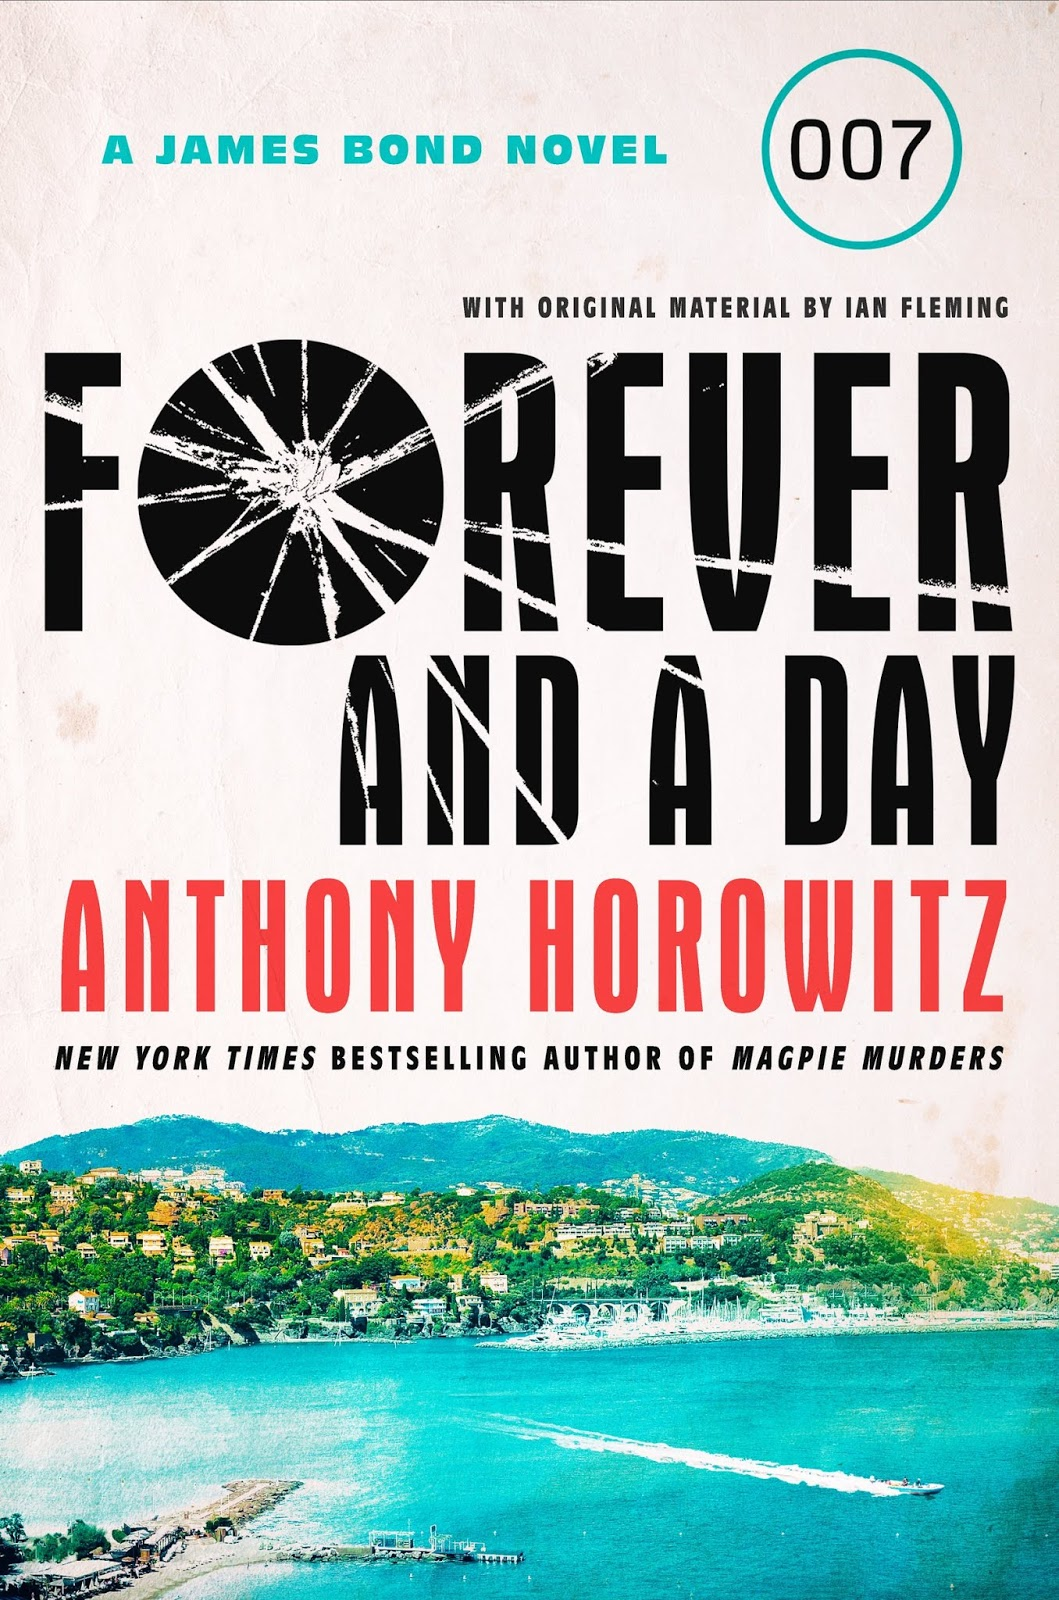 Anthony Horowitz S New Bond Novel Tells Us About Before He Was 007 And Kerry Hammond Is Here To Tell Her